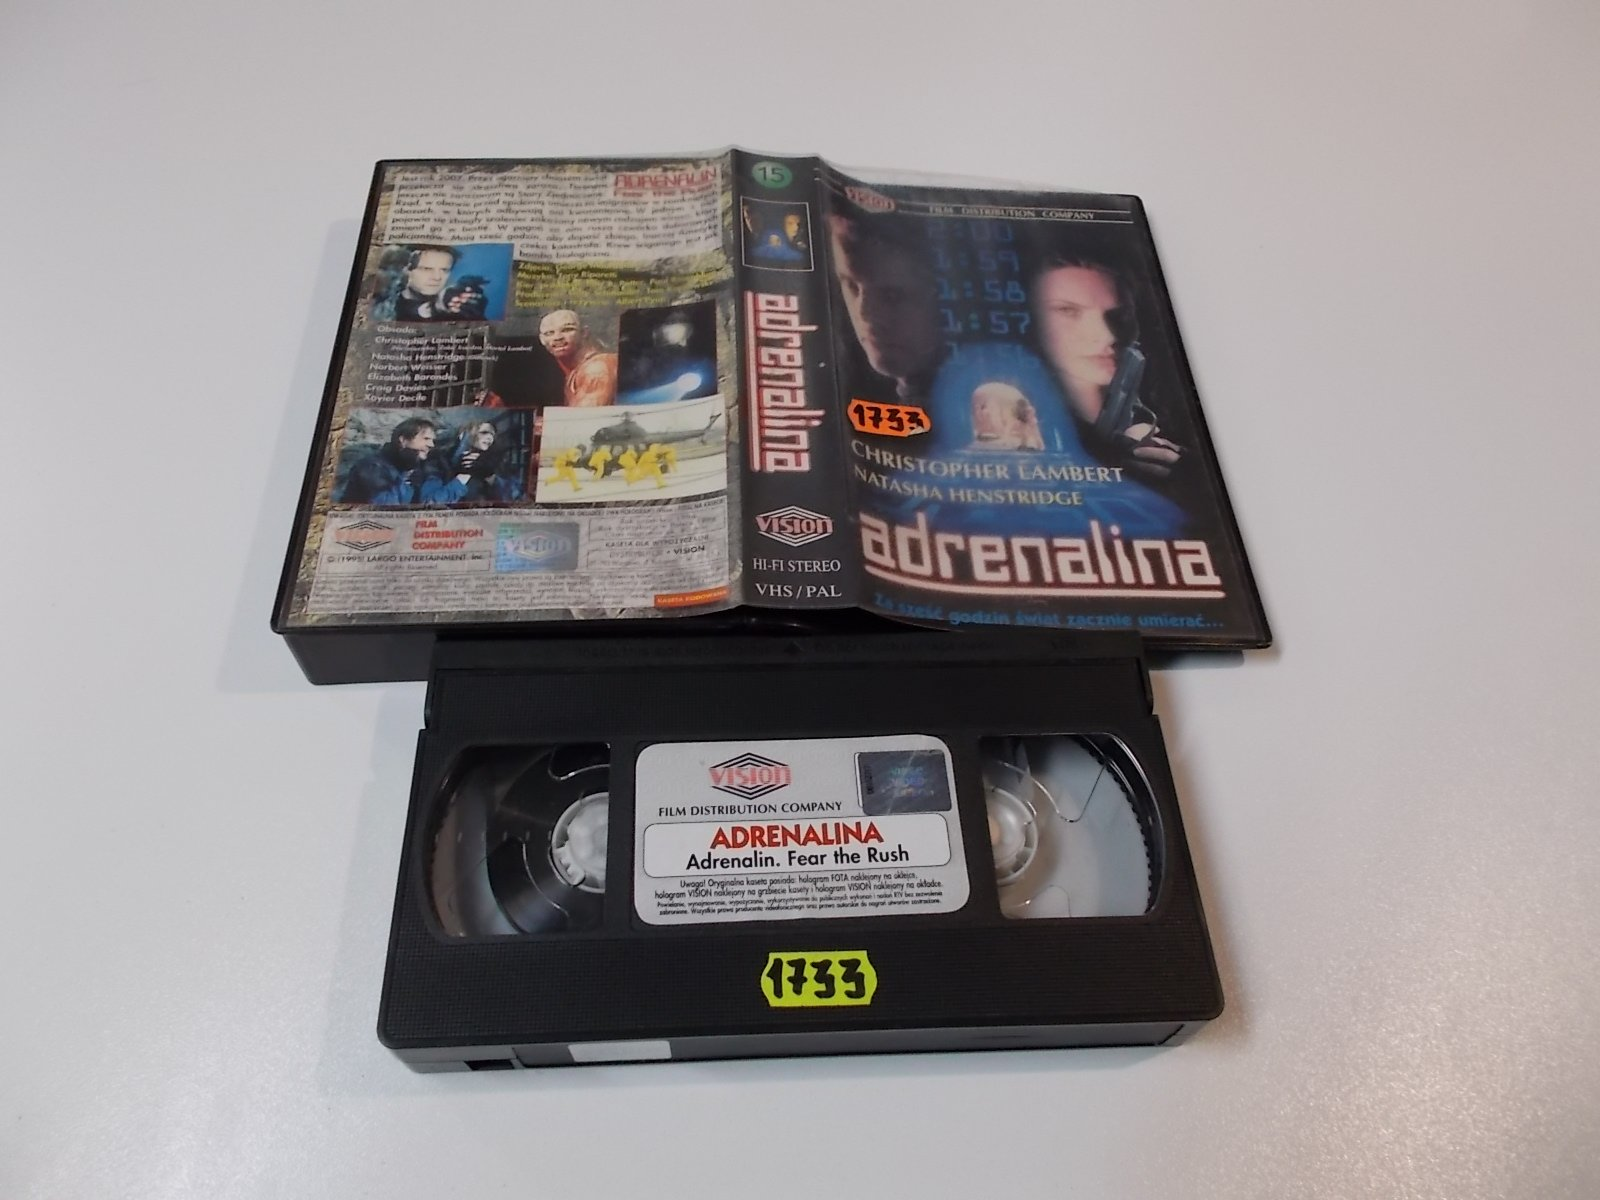 ADRENALINA - VHS Kaseta Video - Opole 1654